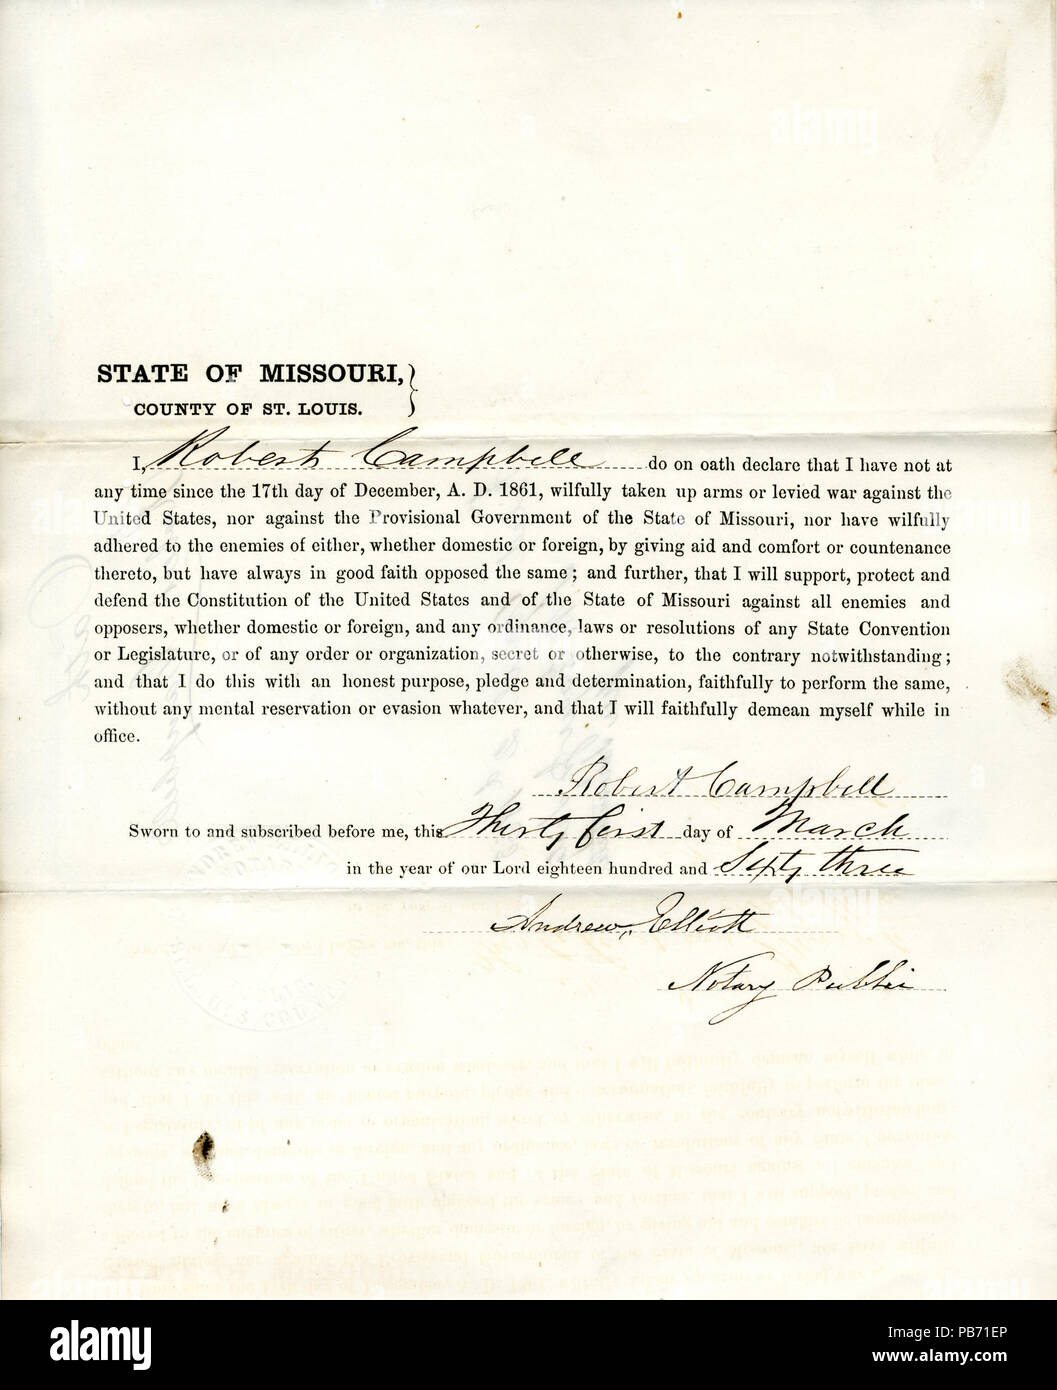 954 Loyalty oath of Robert Campbell of Missouri, County of St.Louis - Stock Image